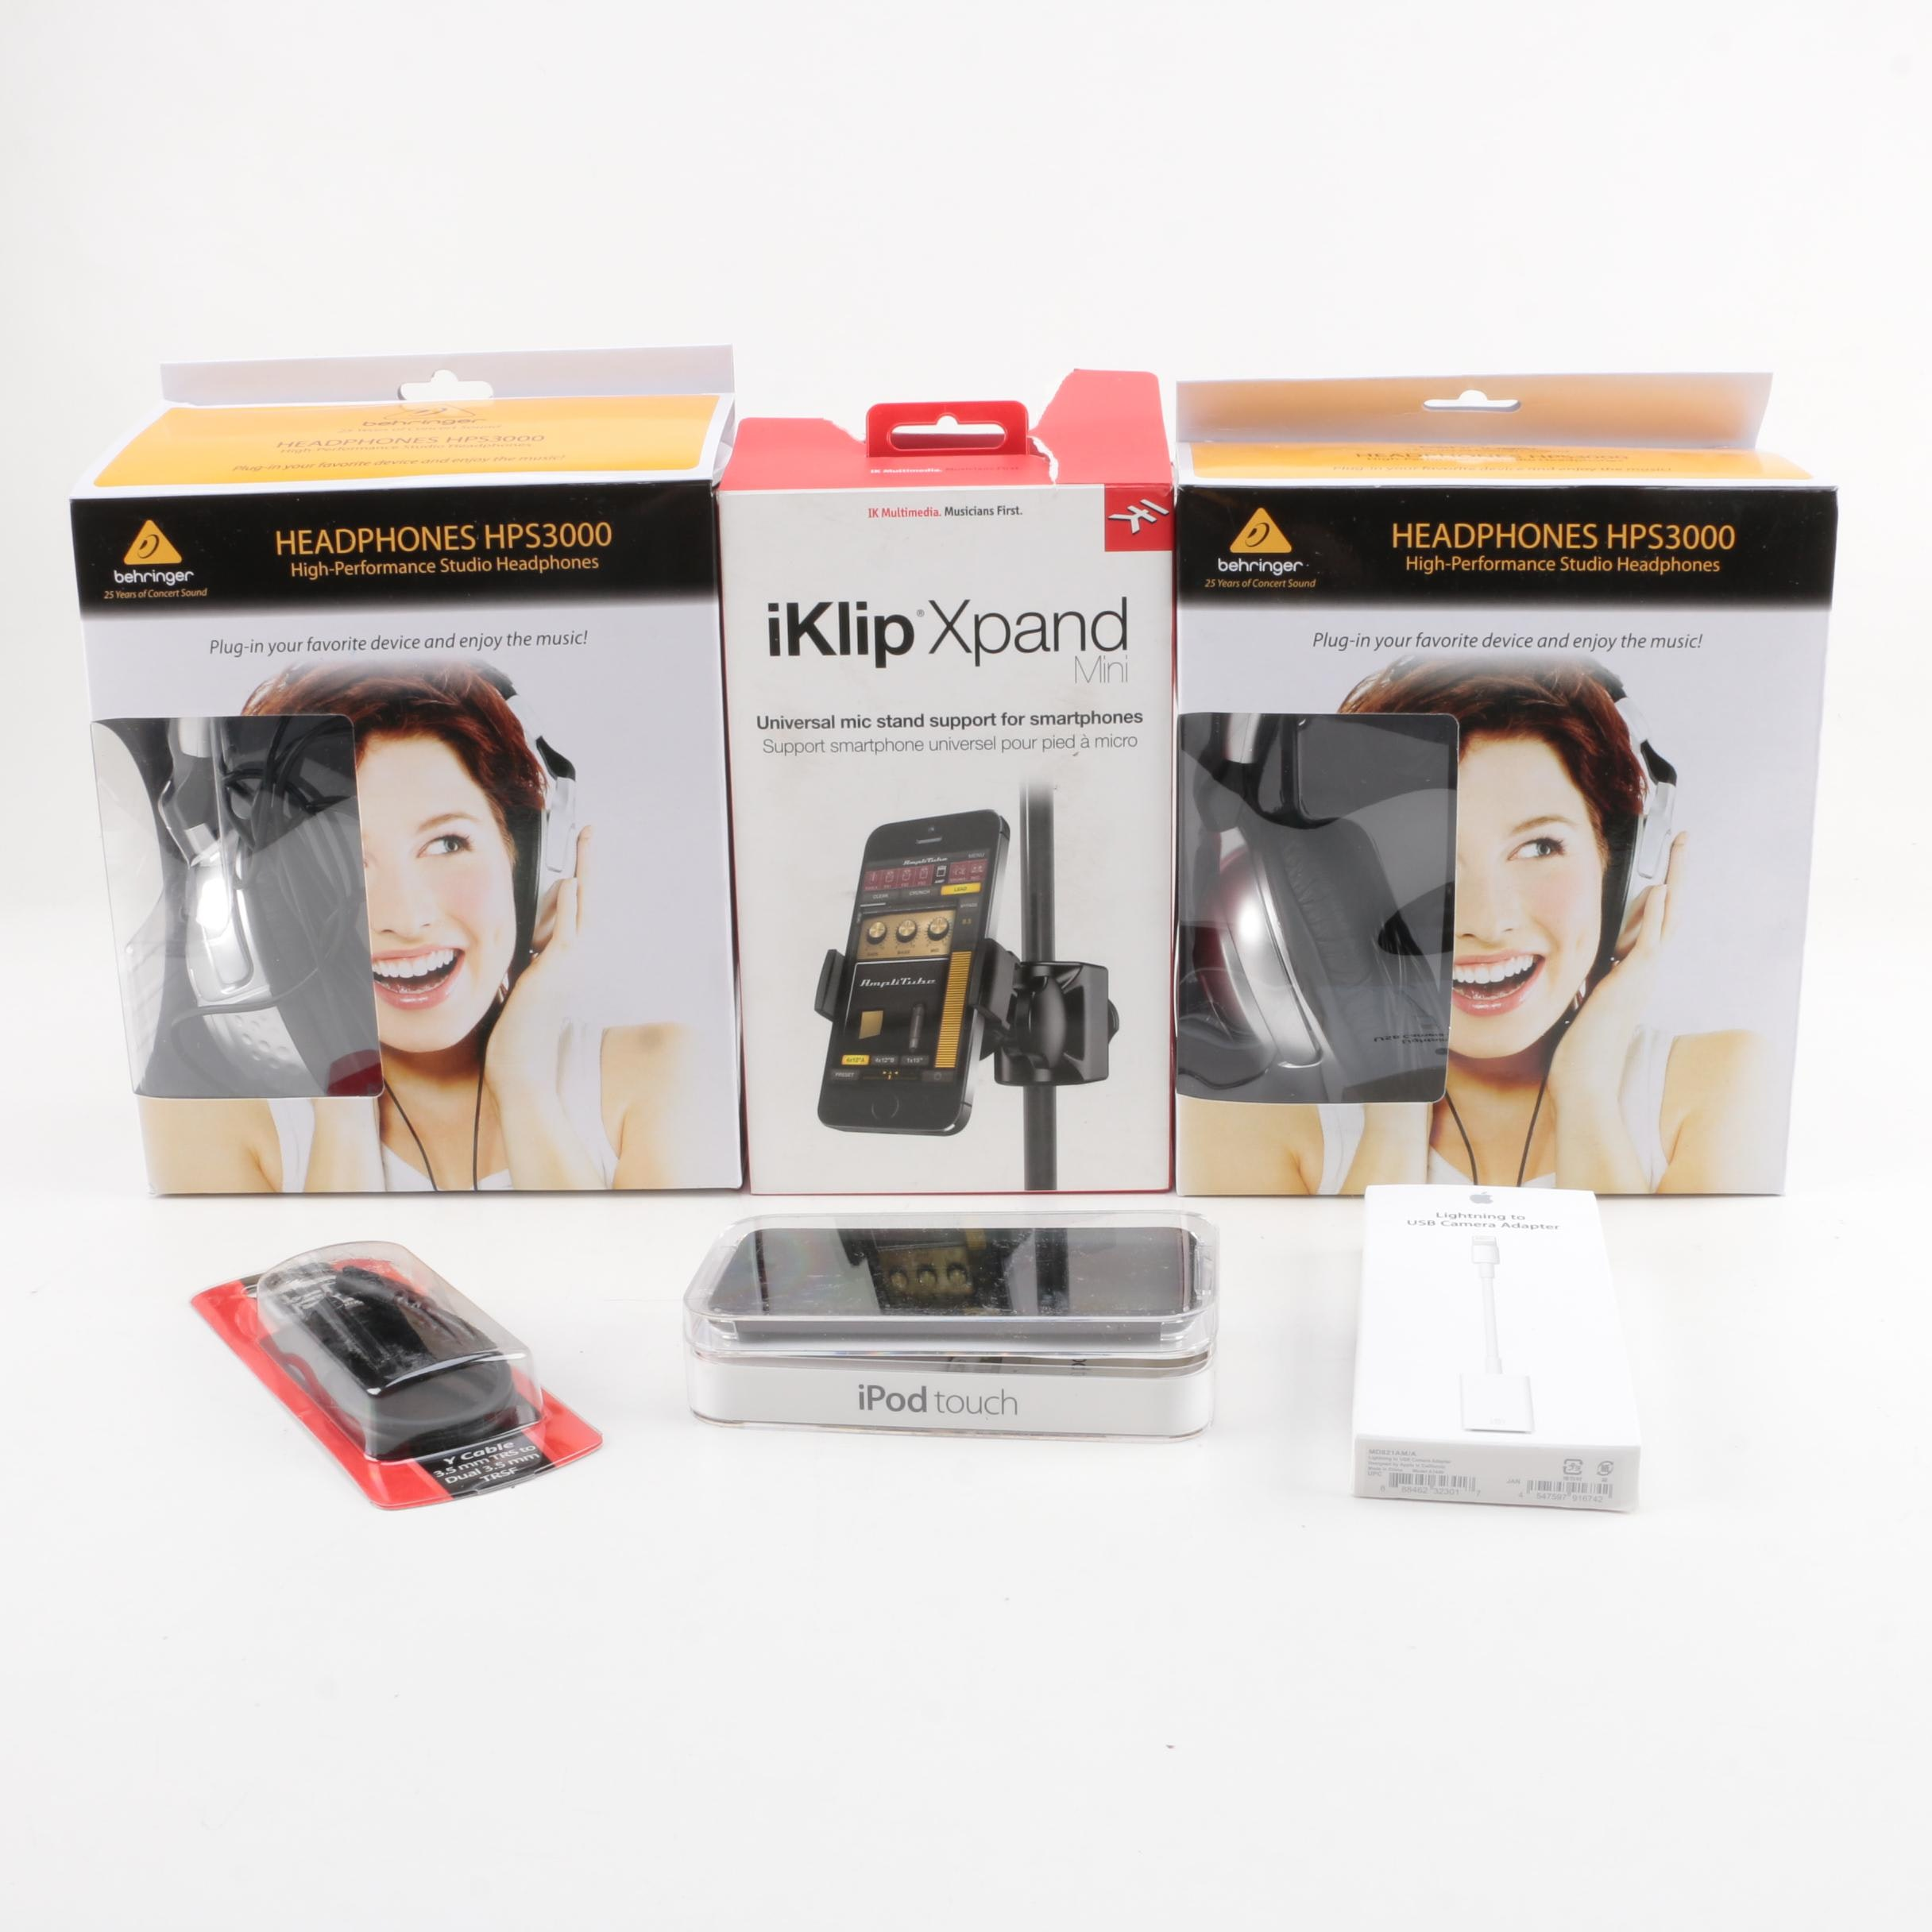 iPod Touch with Original Packaging and Accessories